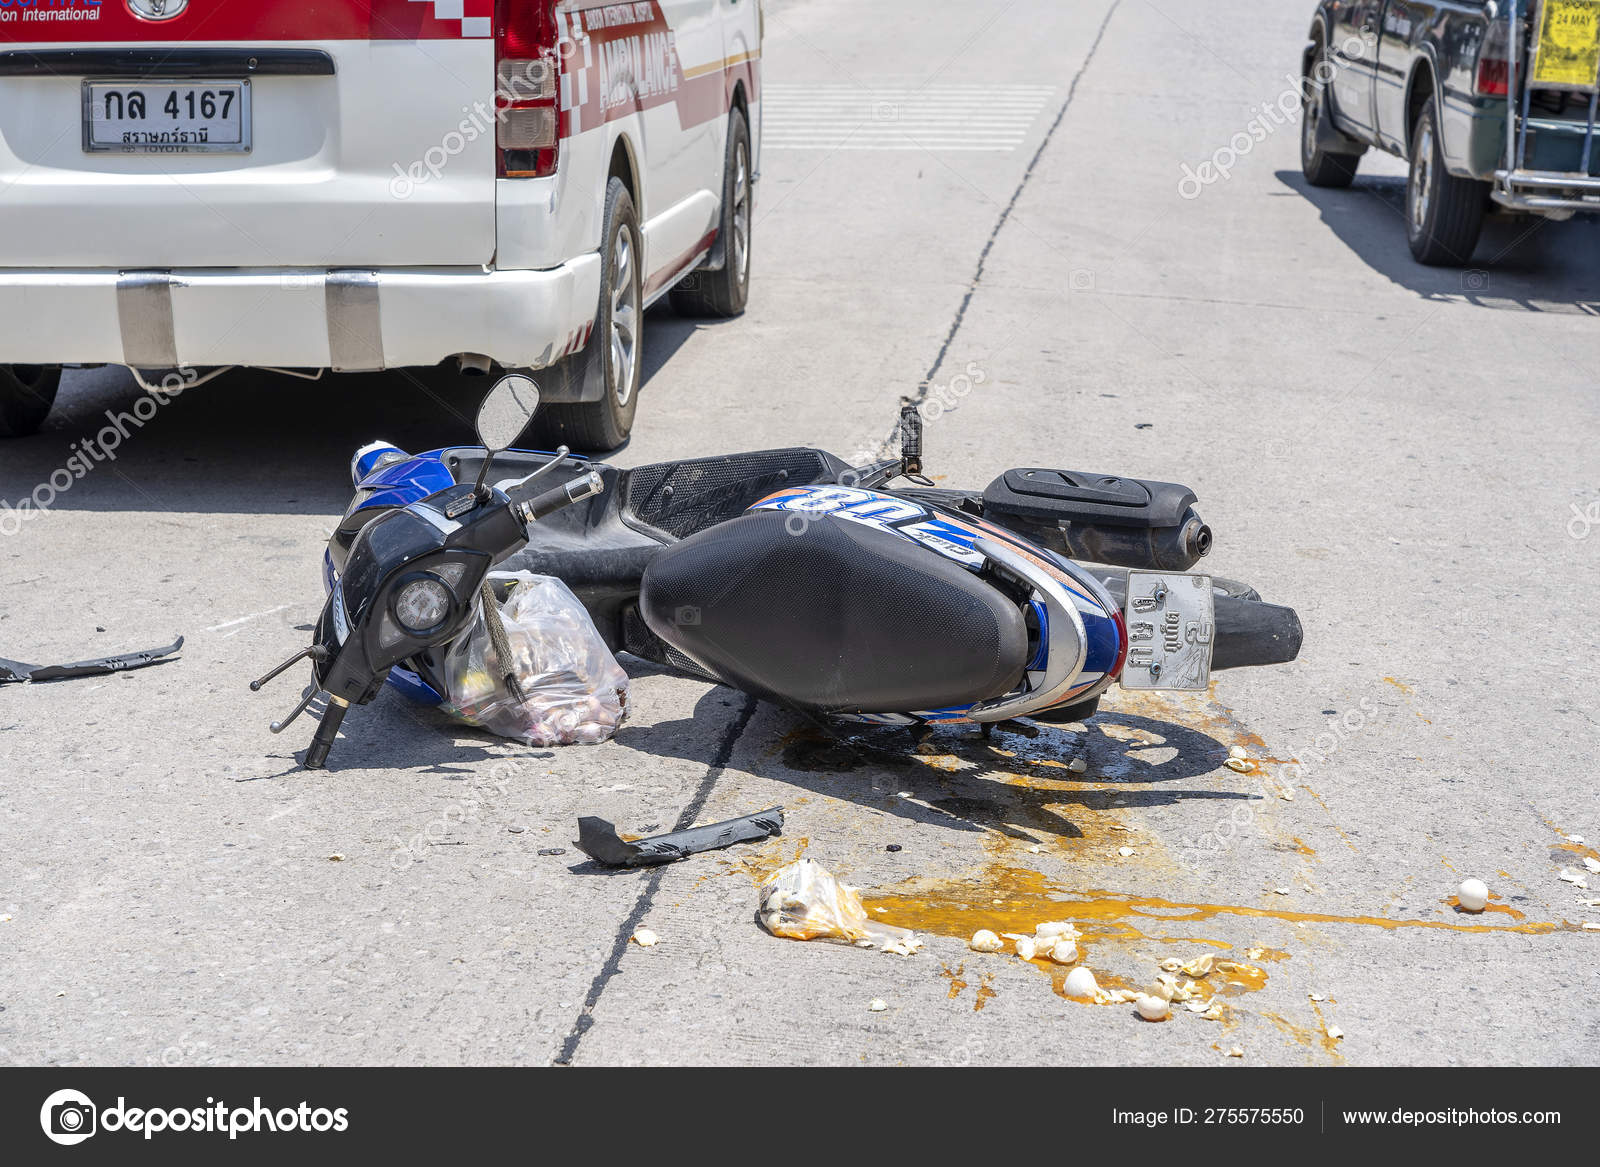 Motorcycle accident that happened on the road at tropical